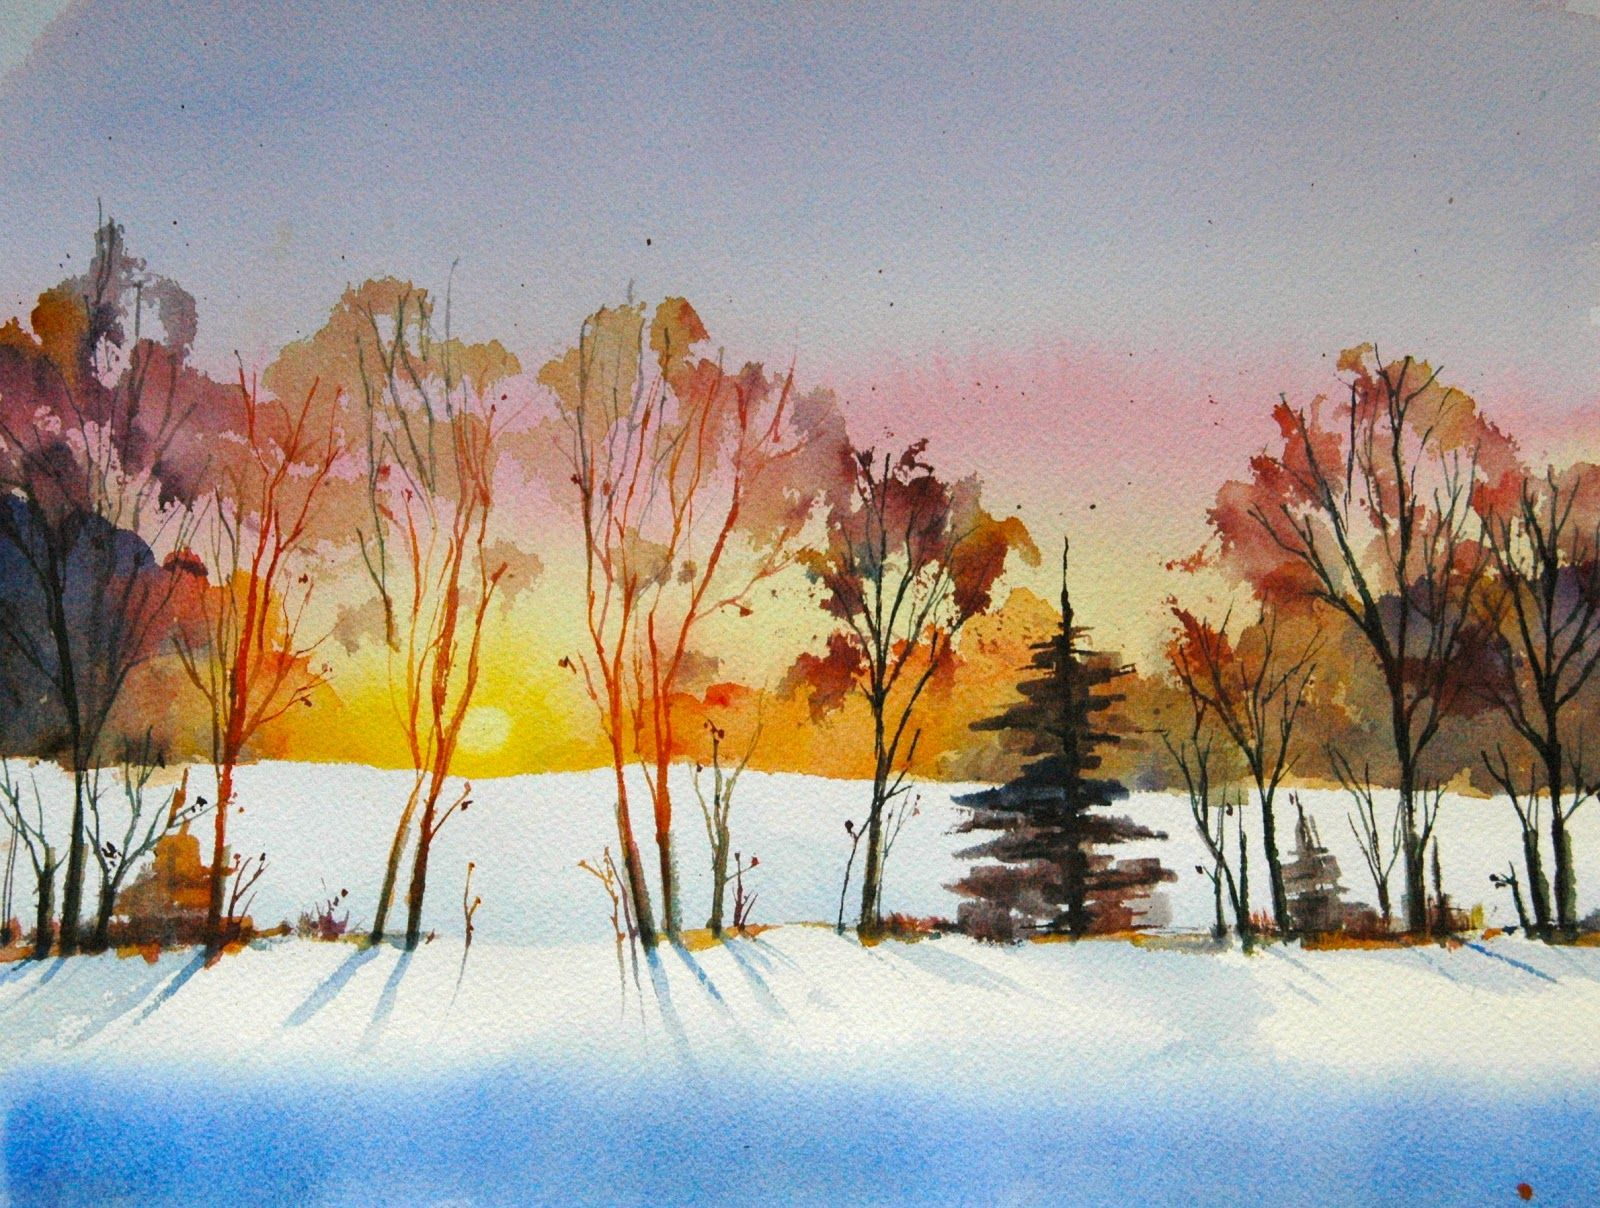 Watercolor artist magazine palm coast fl - Binary Colors Paintings By Michele Clamp Update To Sterling Edwards Sunset Landscape